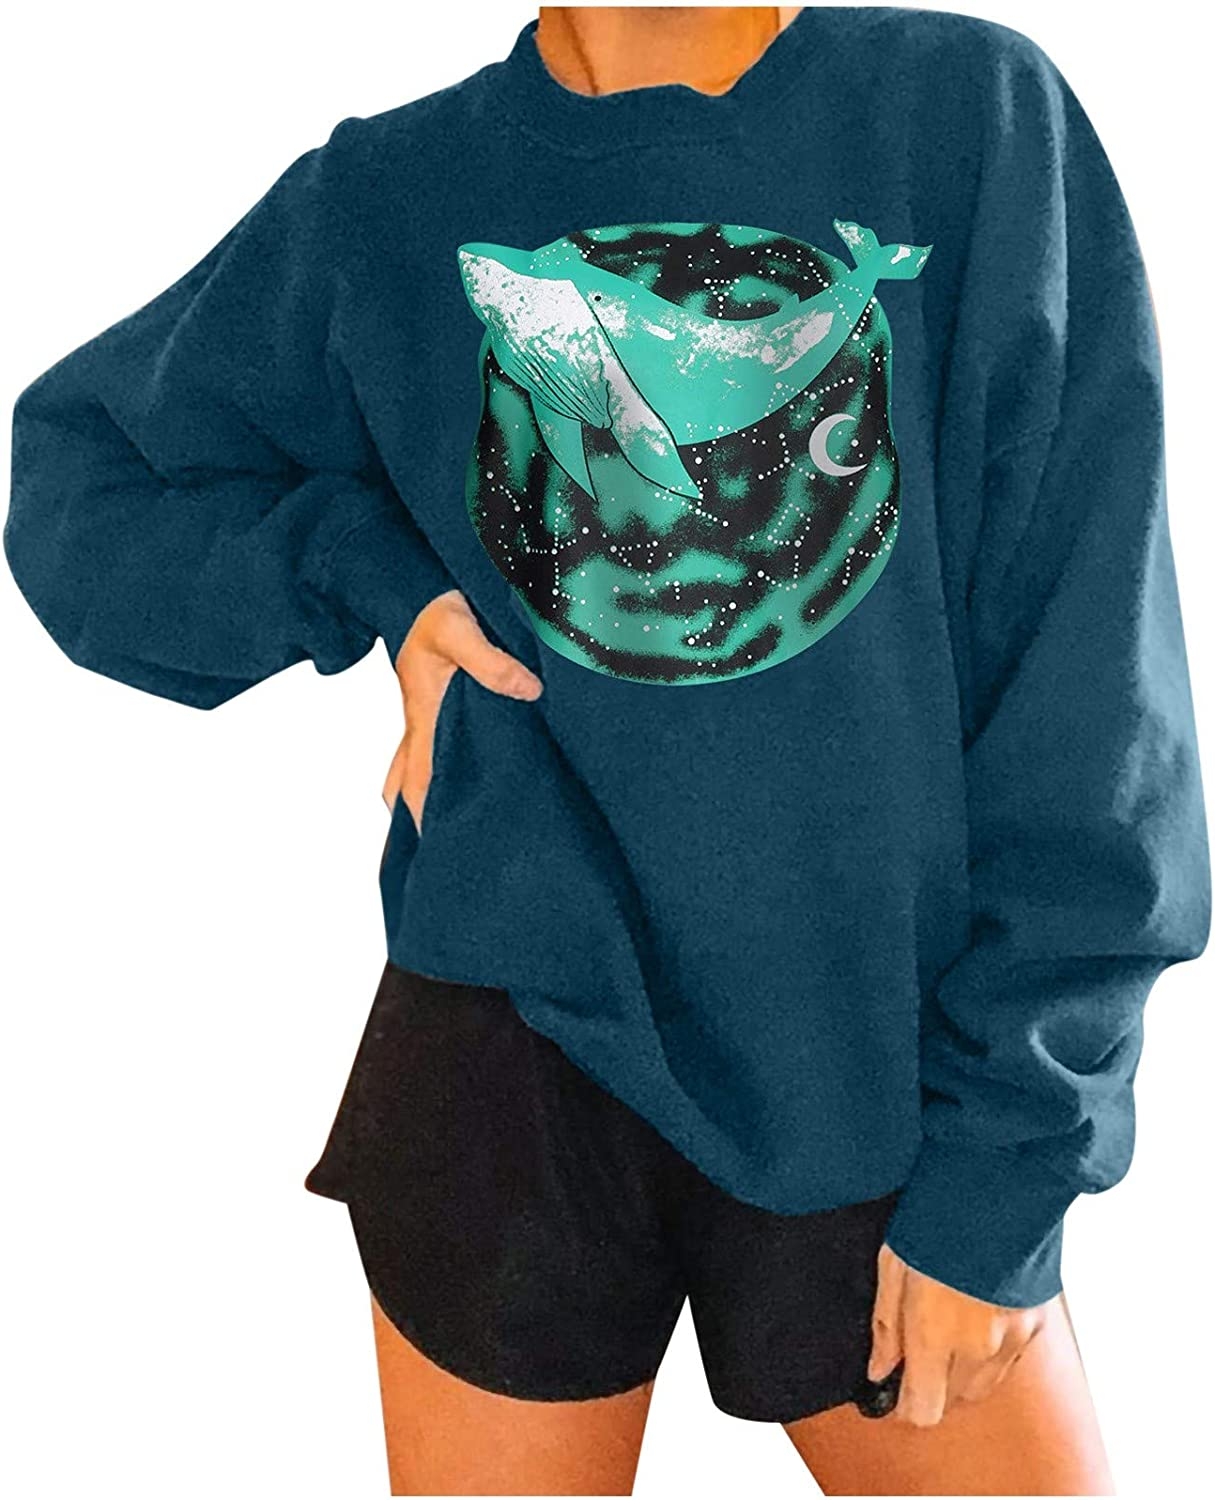 nunonette Women's Casual Fashion Round Neck Waves Whale Printed Long Sleeve Mid-Length Top Pullover Sweatshirt Loose Shirts